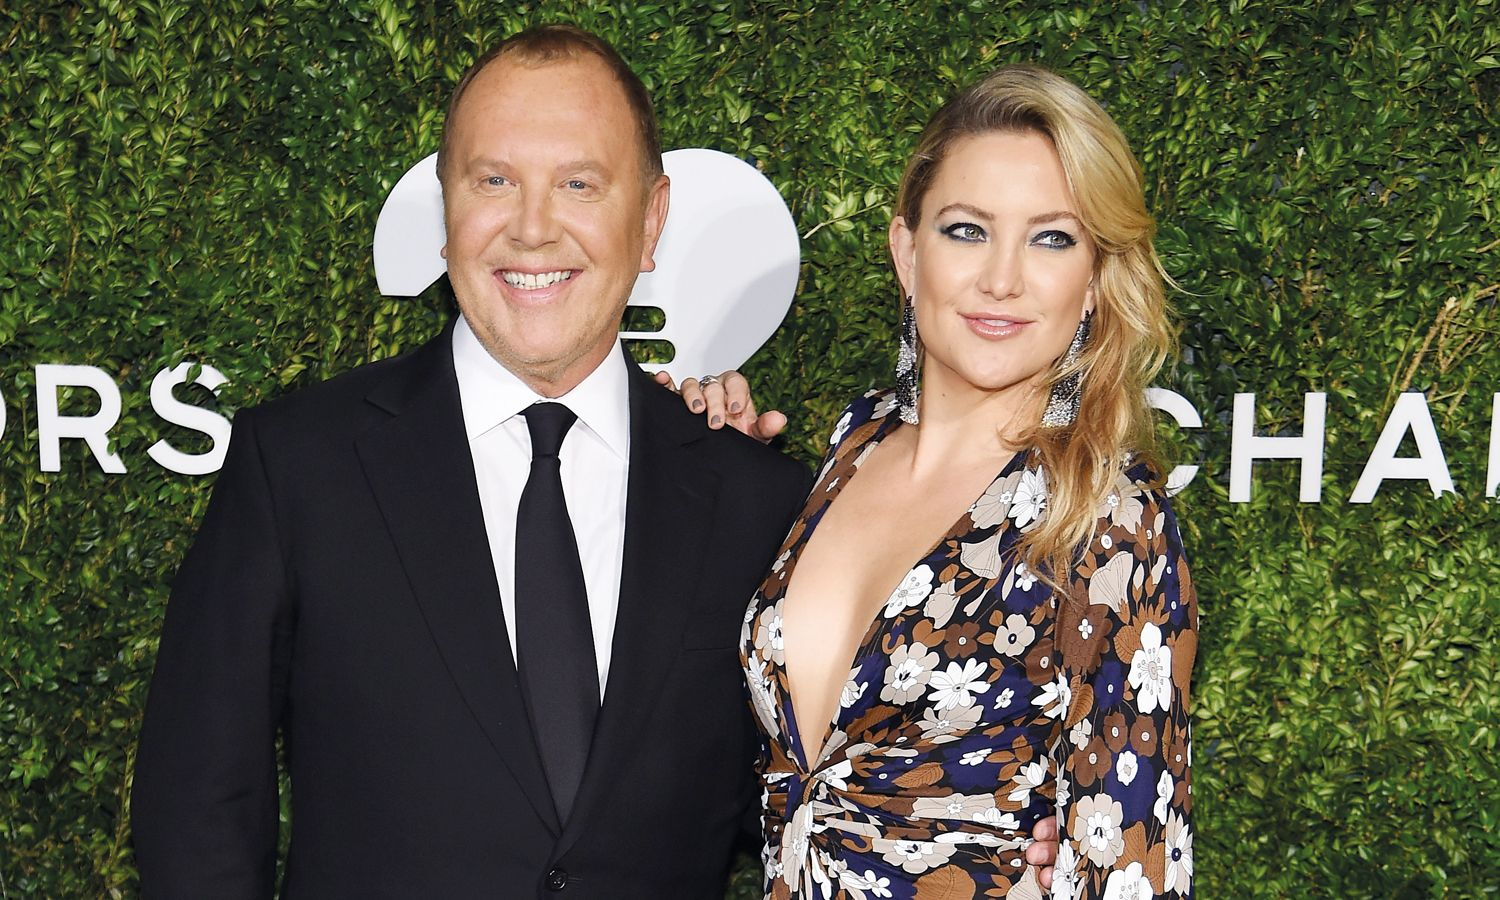 Michael Kors and Kate Hudson on Ending Hunger and Inspiring Youth